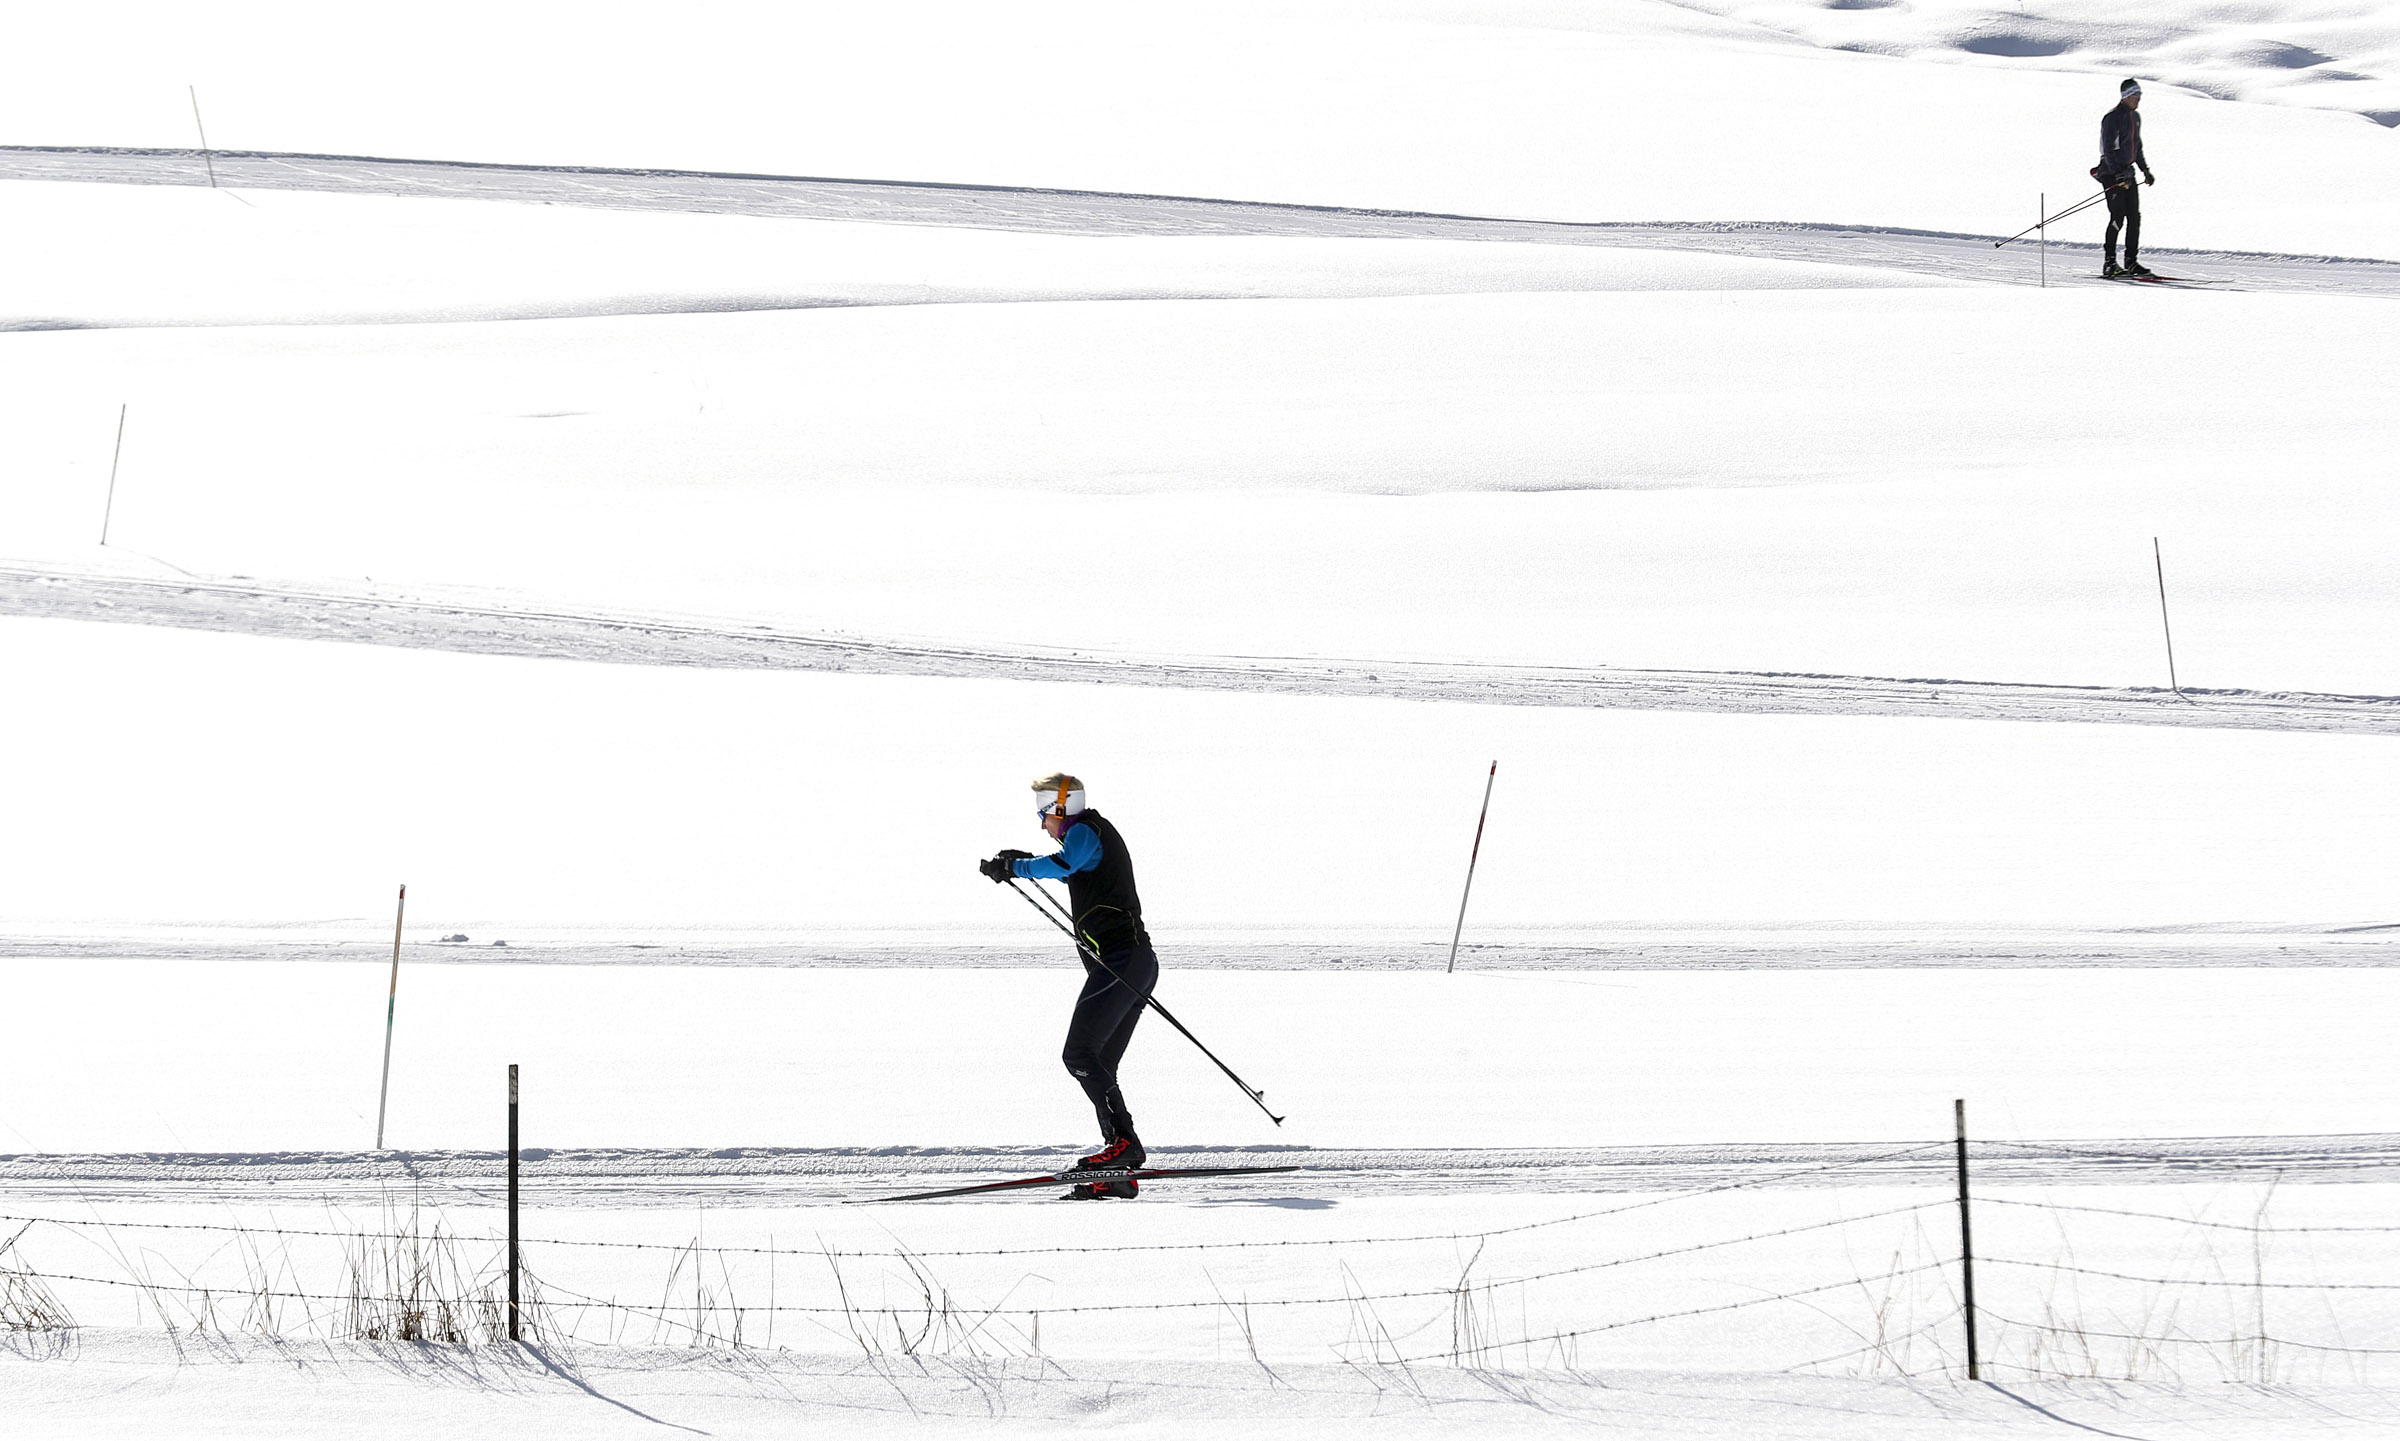 Nordic skiers enjoy the sun as they glide along the White Pine Nordic Center's groomed track outside Park City on Tuesday, Dec. 10, 2019.